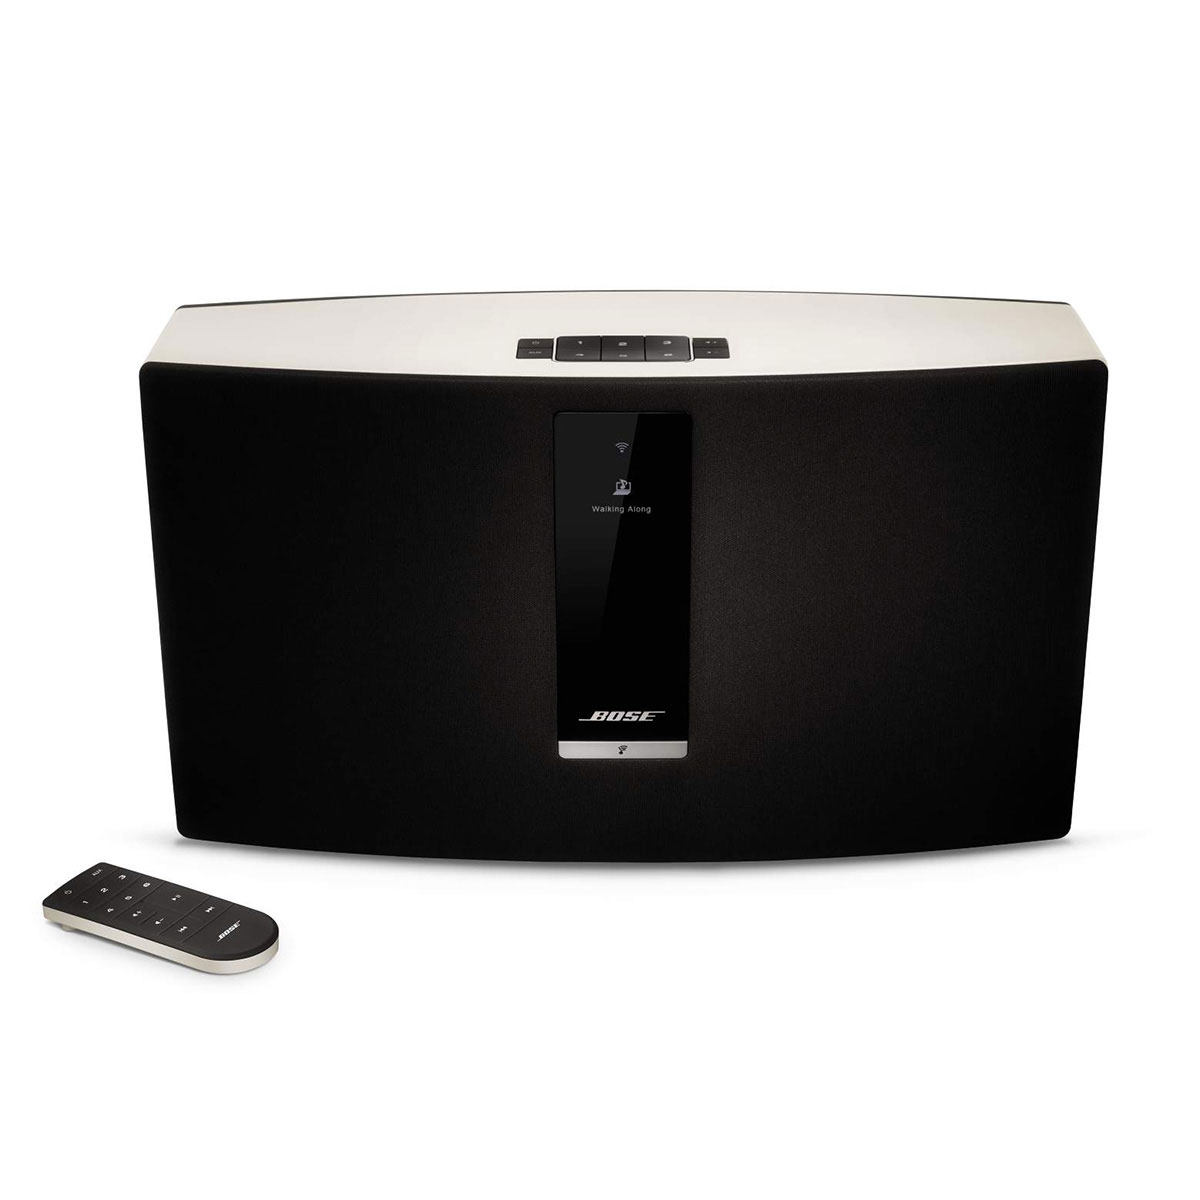 bose soundtouch 30 dock enceinte bluetooth bose sur ldlc. Black Bedroom Furniture Sets. Home Design Ideas